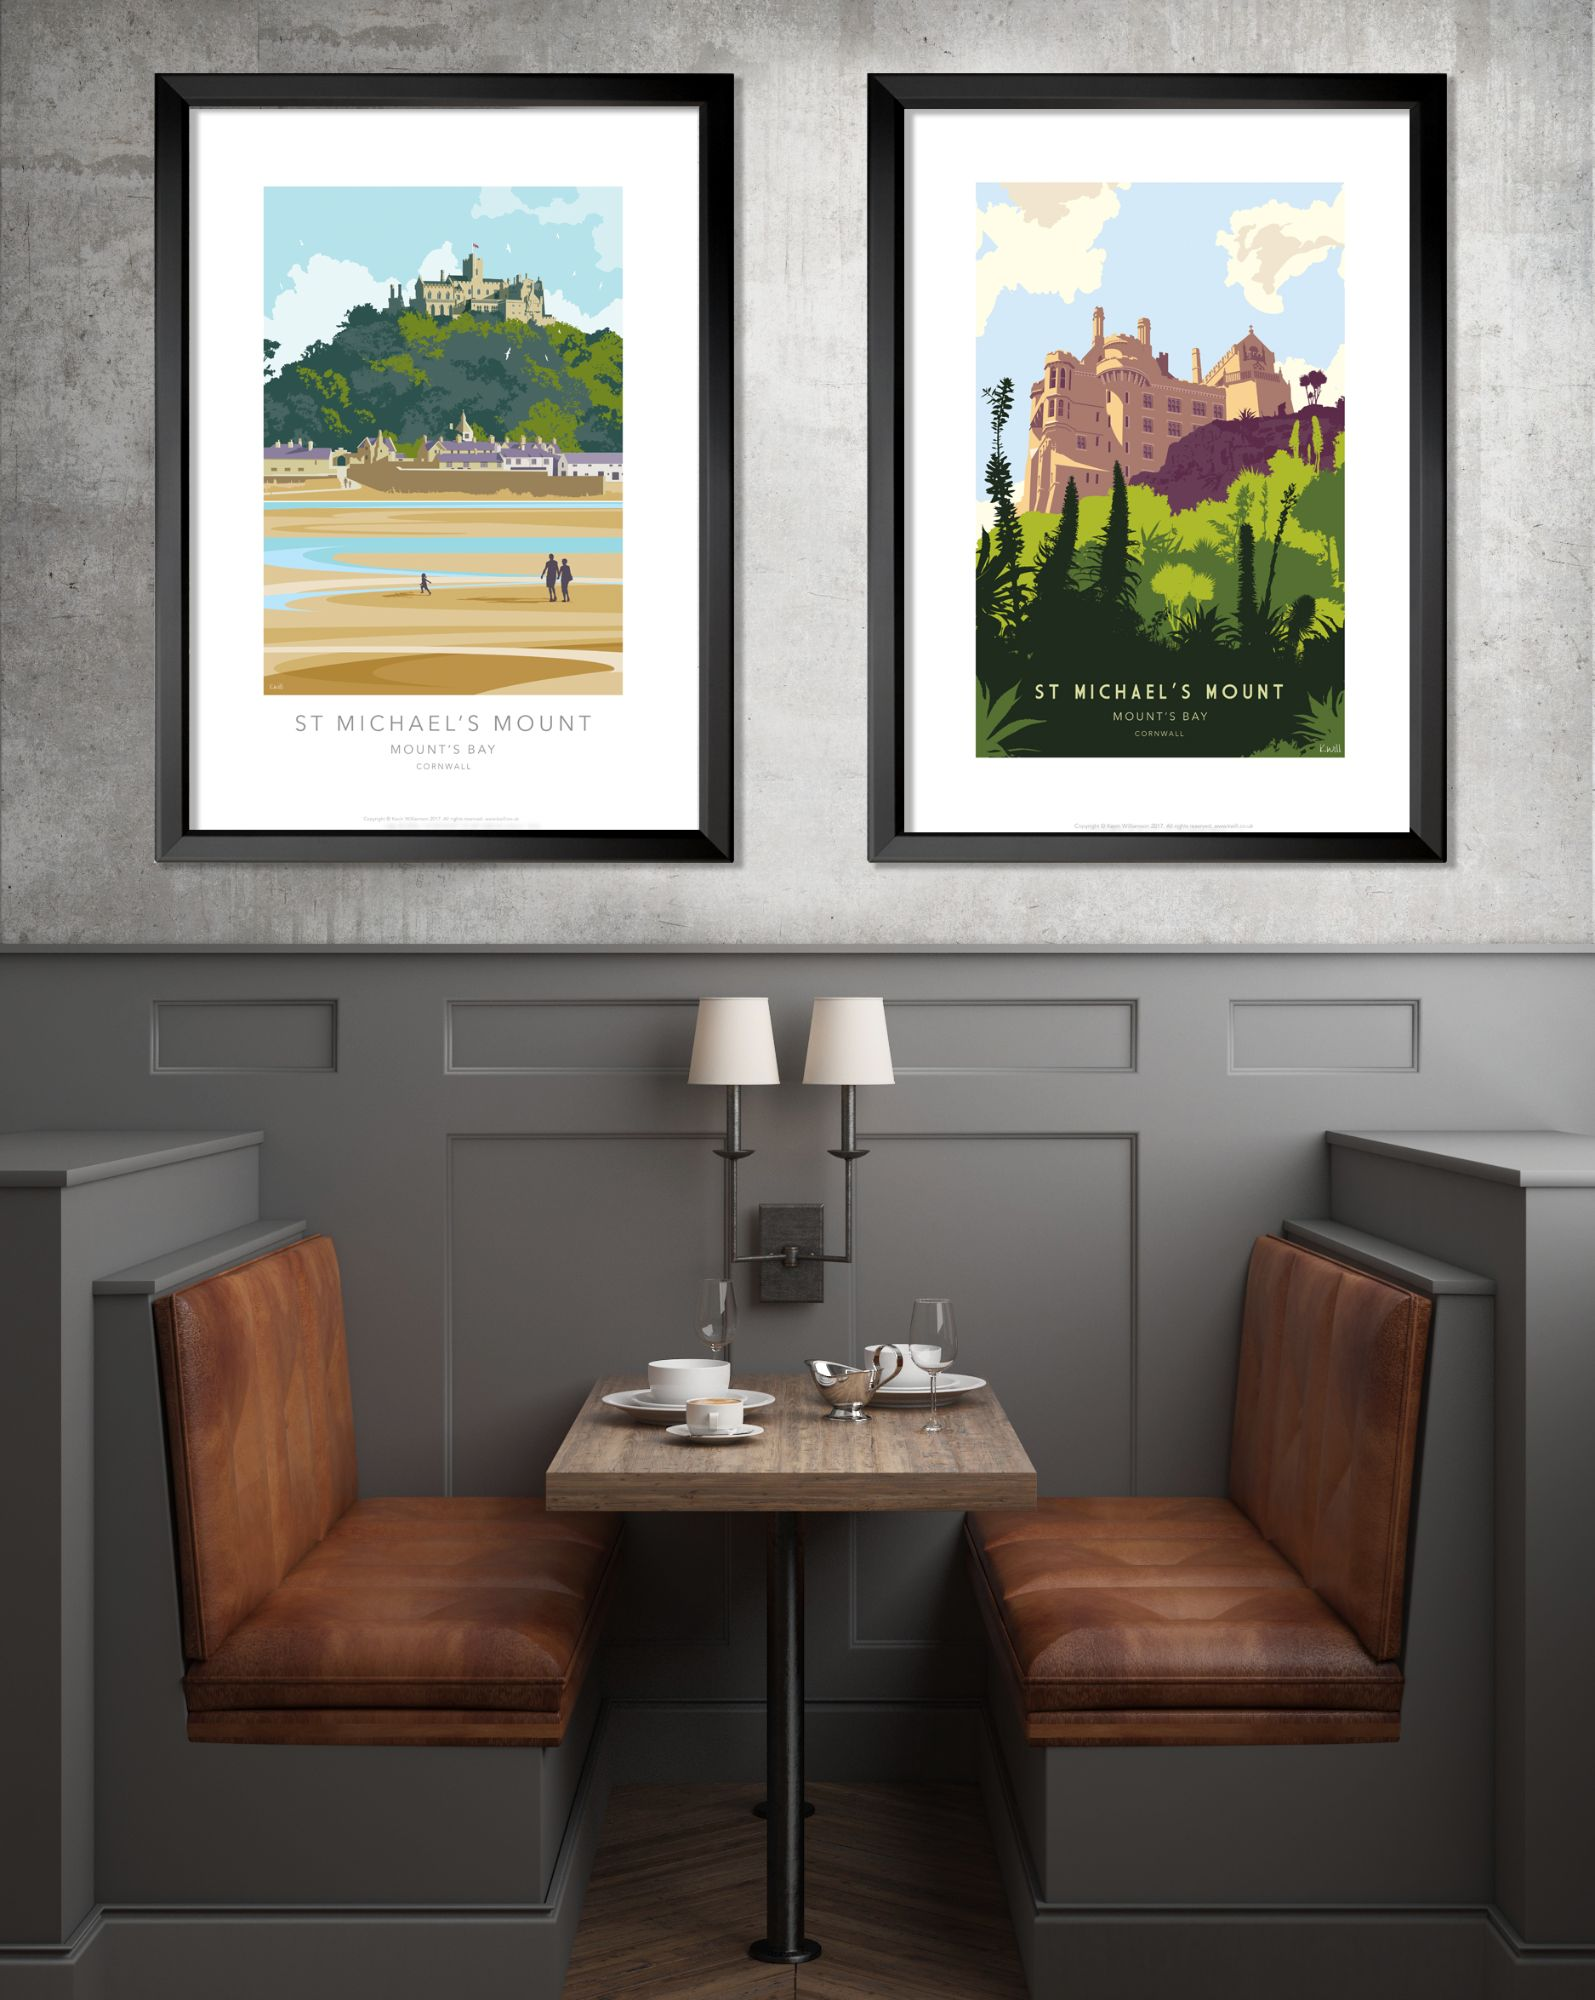 Illustrated prints of St Michael's Mount